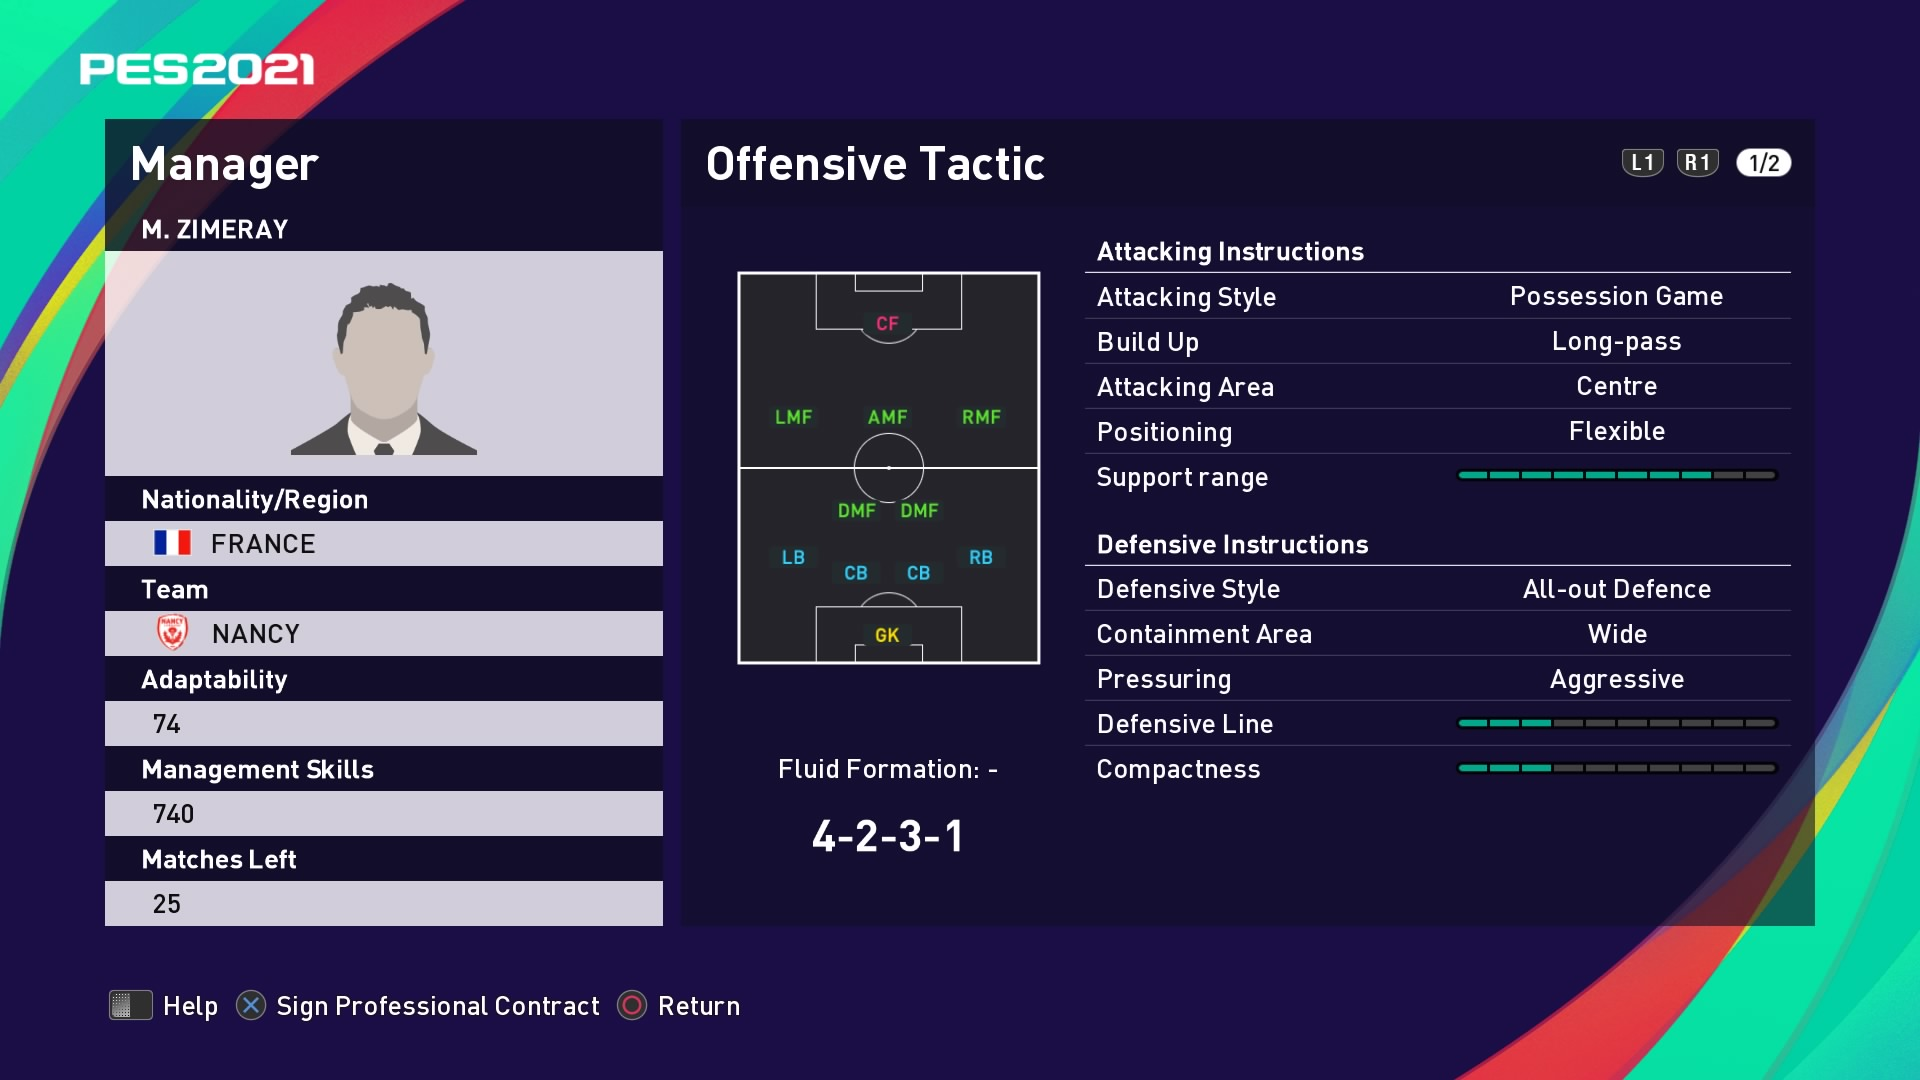 M. Zimeray (Jean-Louis Garcia) Offensive Tactic in PES 2021 myClub